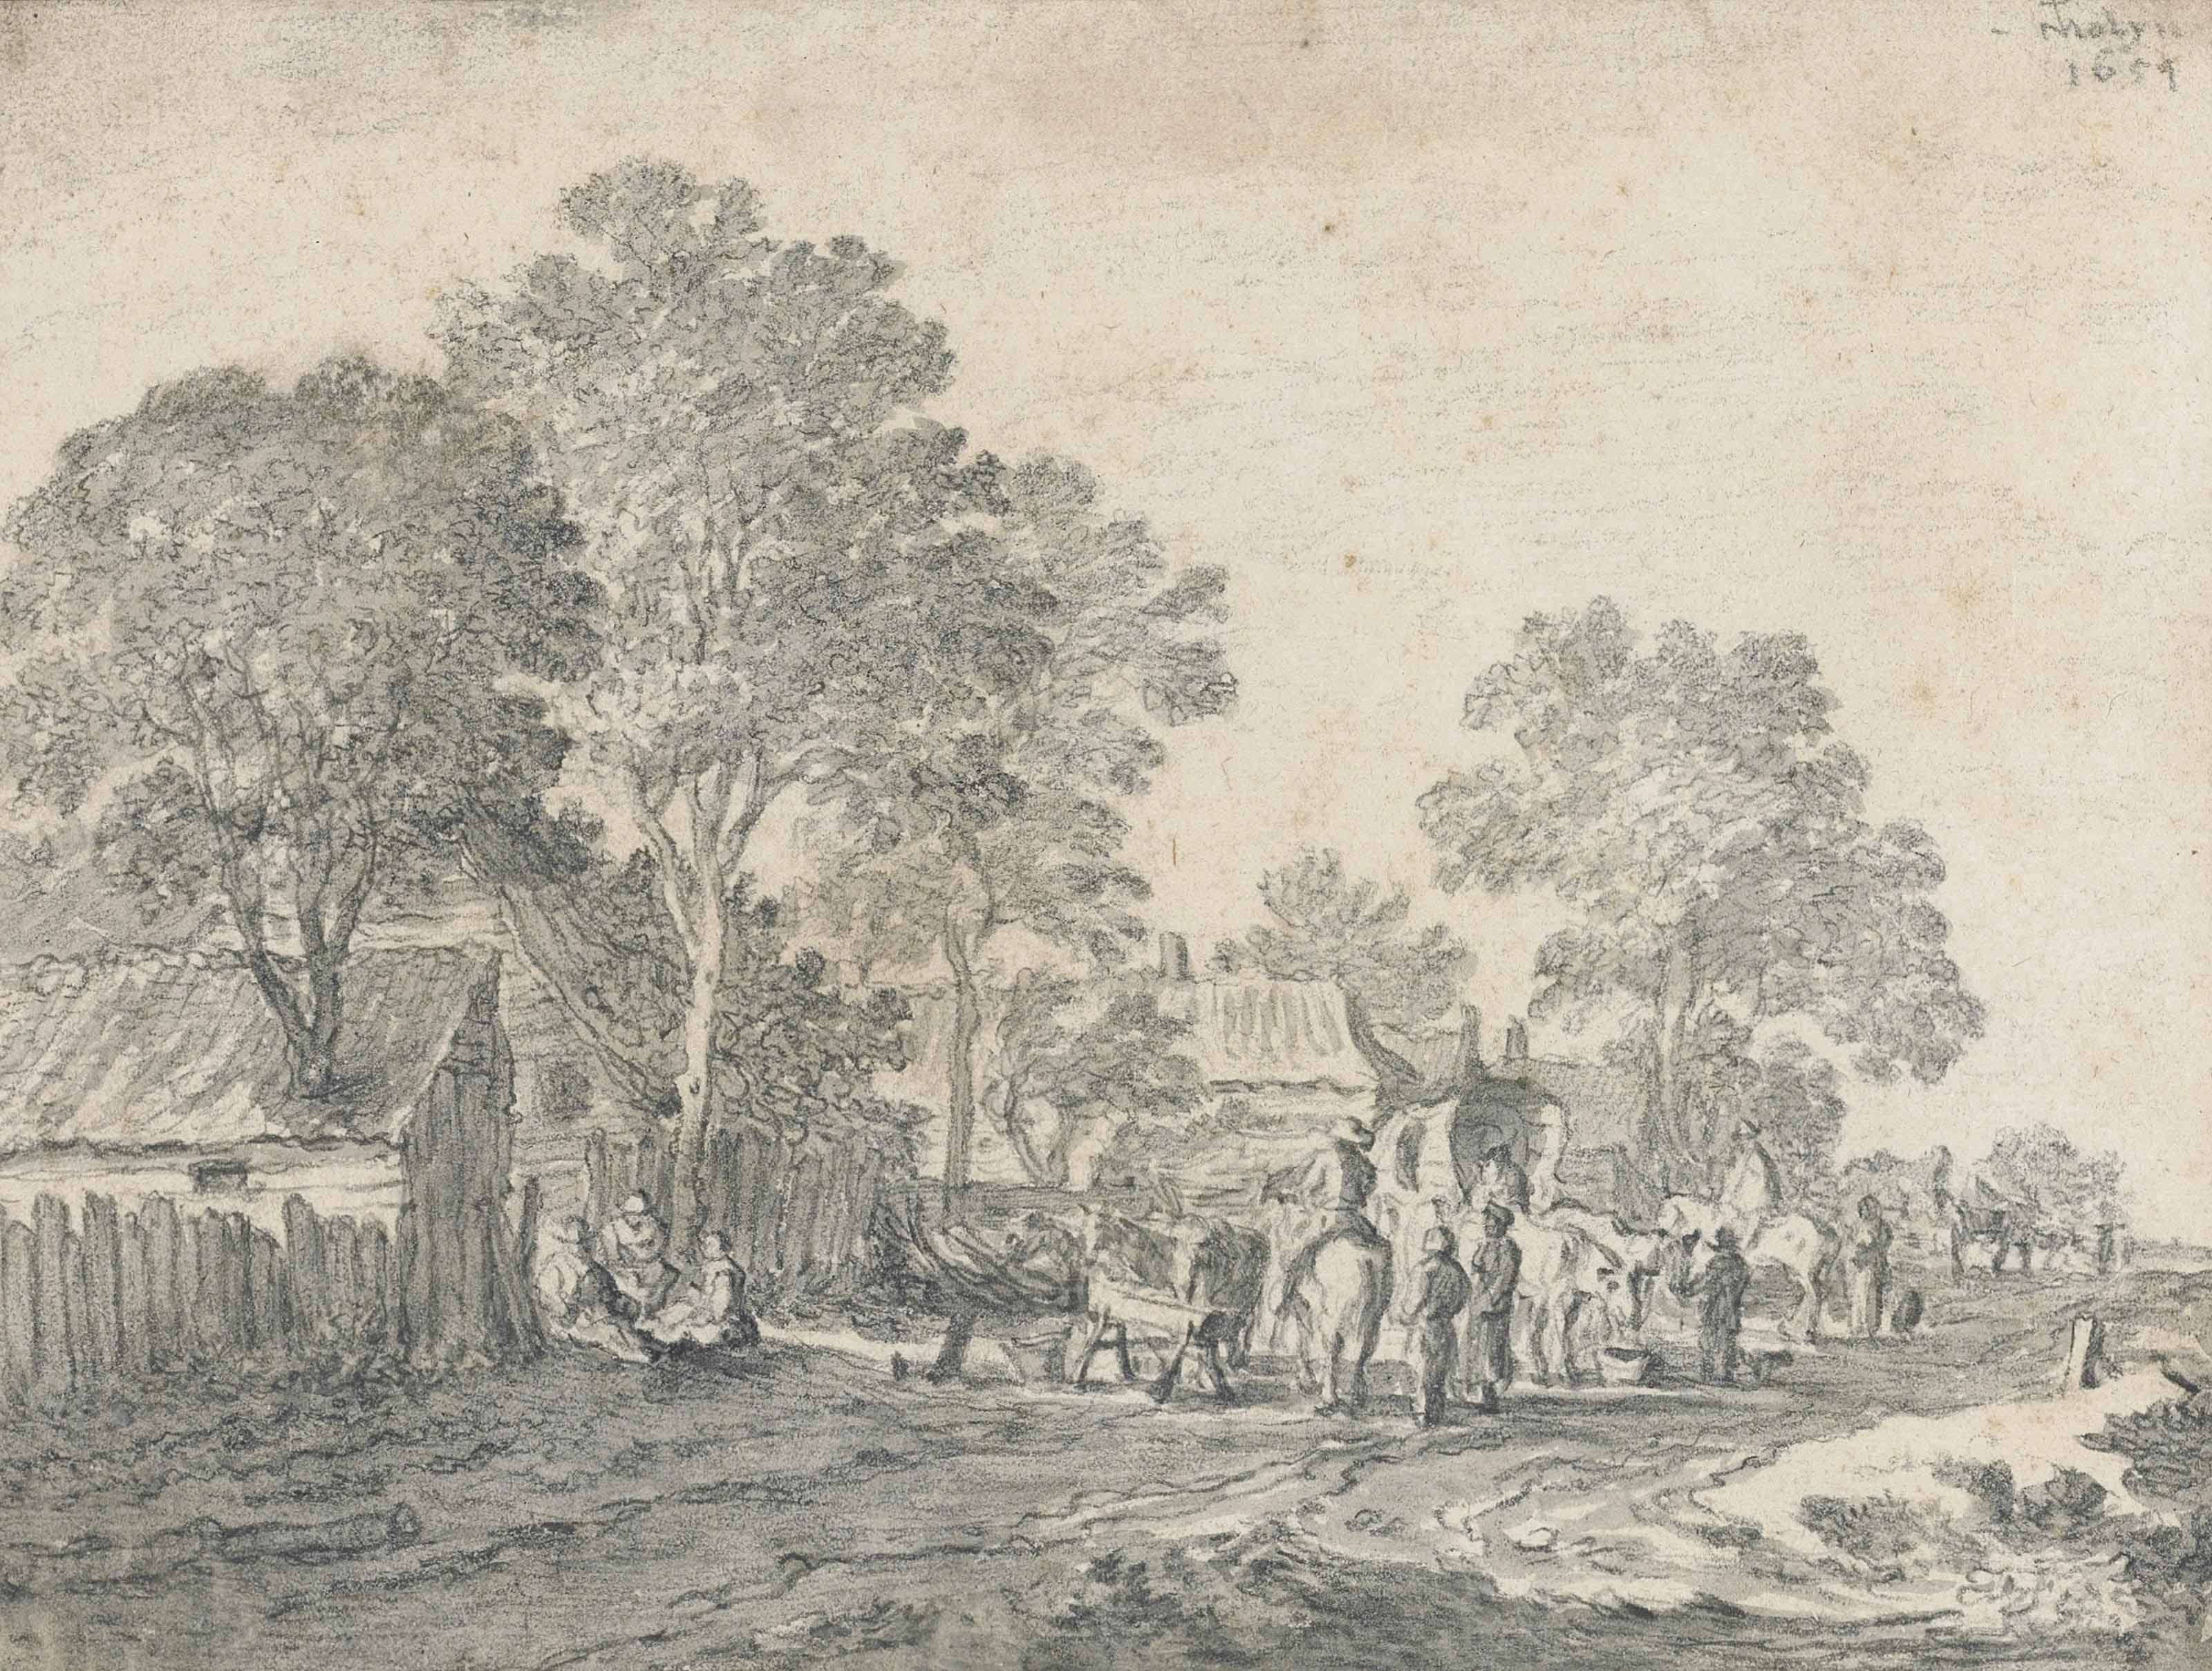 Horsemen and wagon-drivers resting in a village